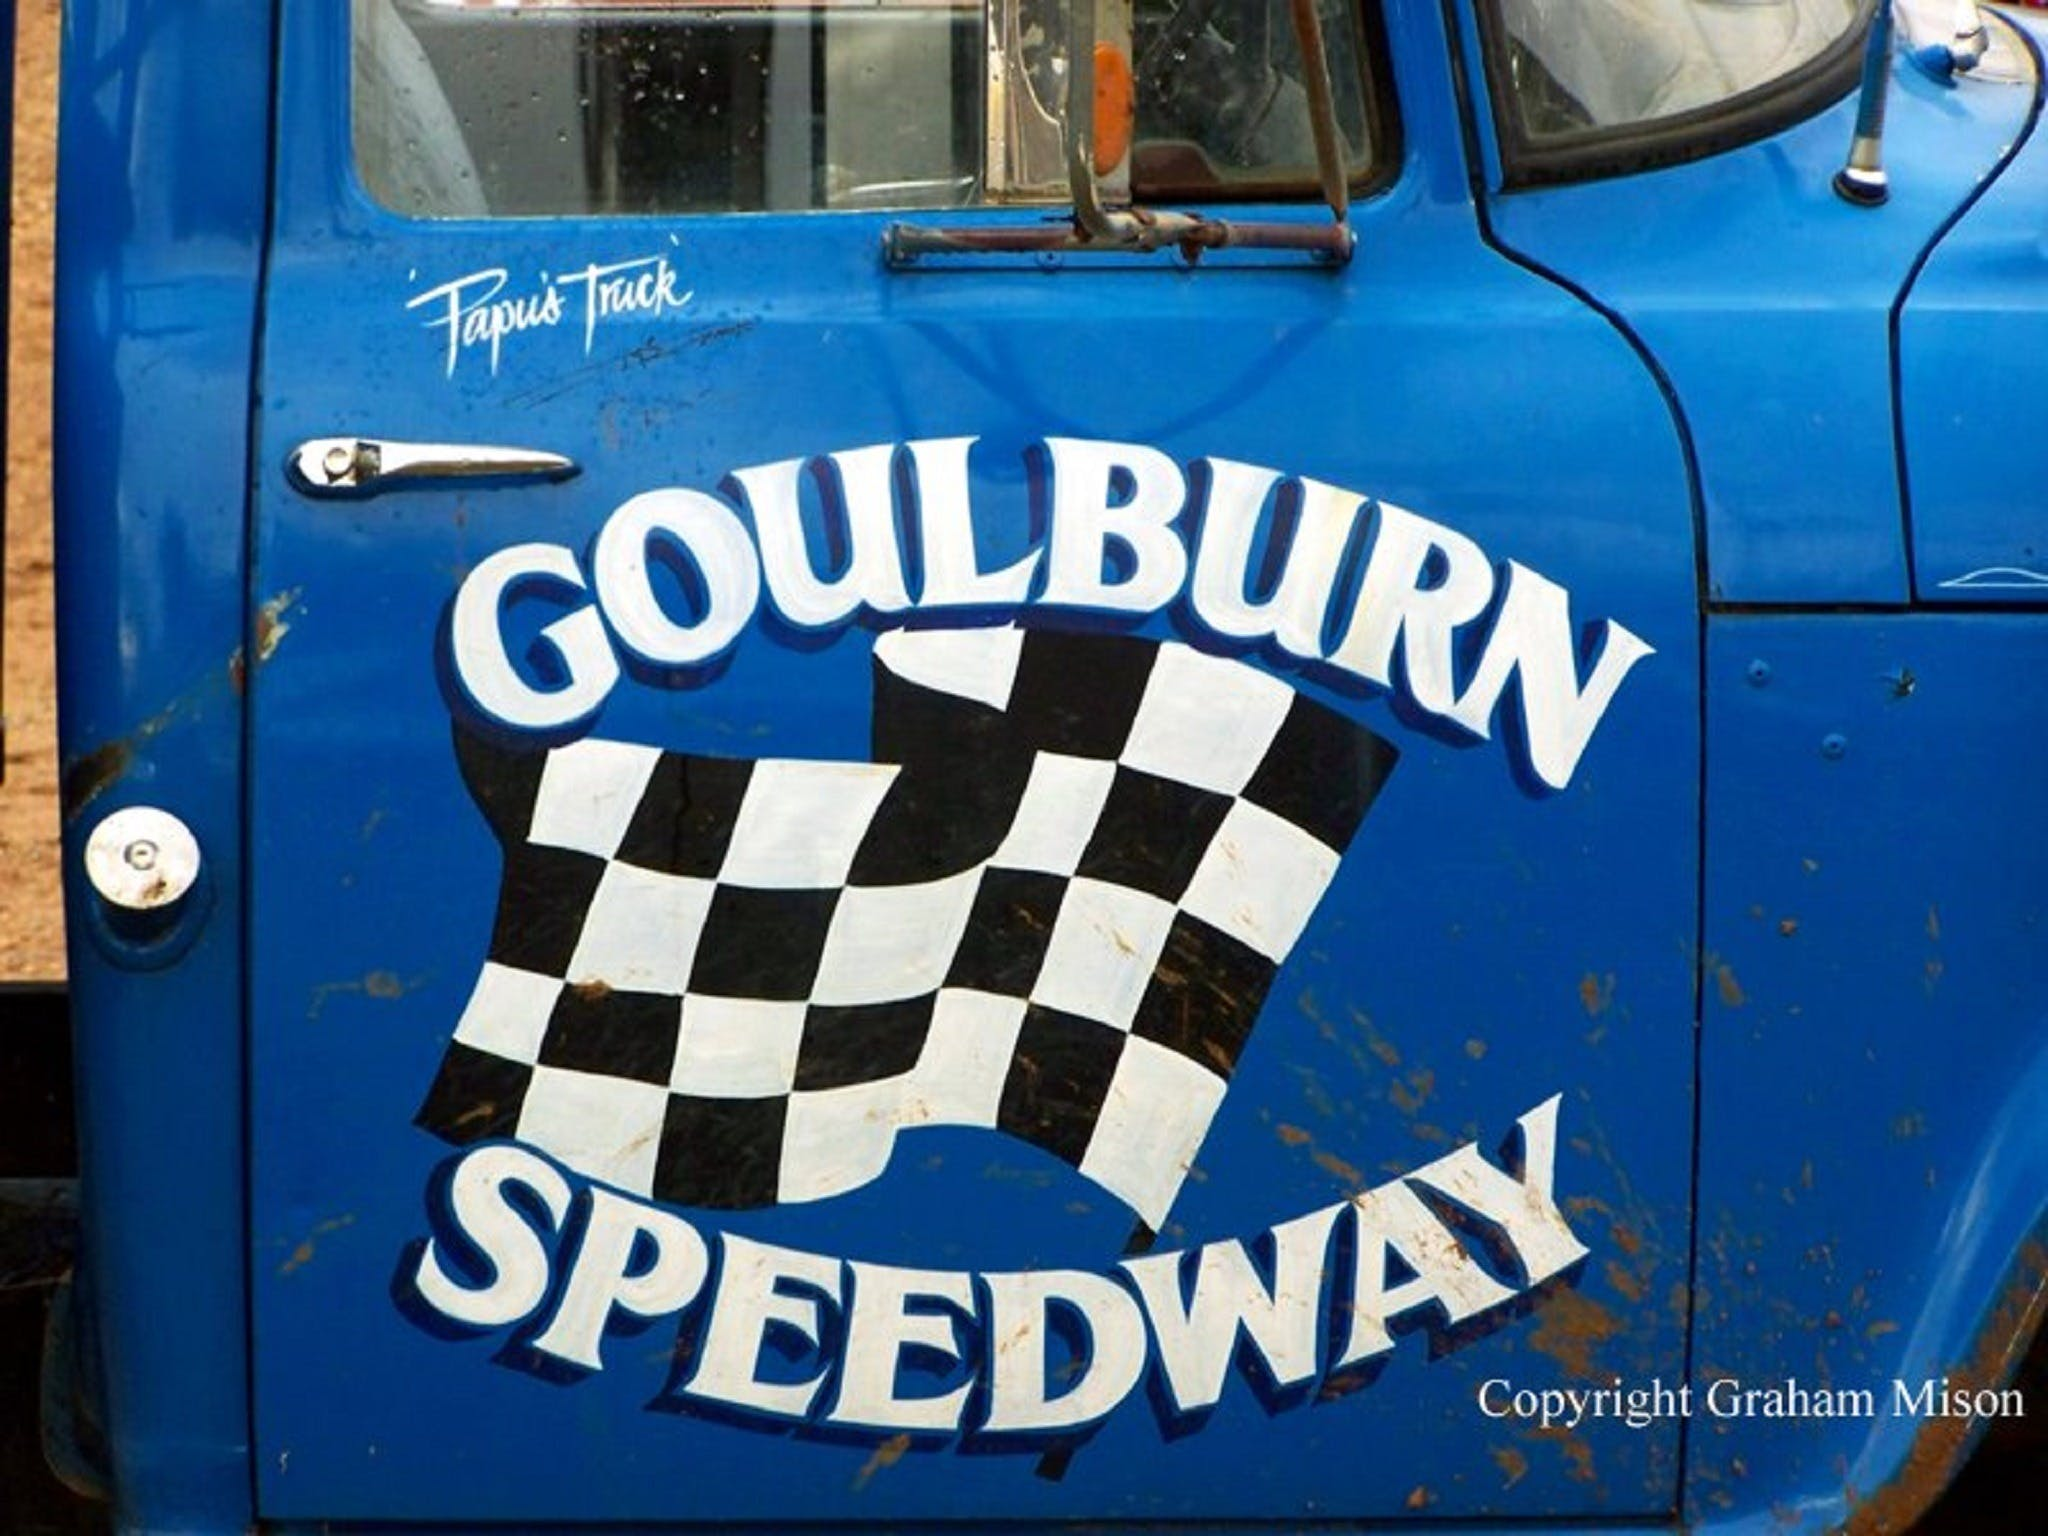 50 years of racing at Goulburn Speedway - Accommodation Adelaide